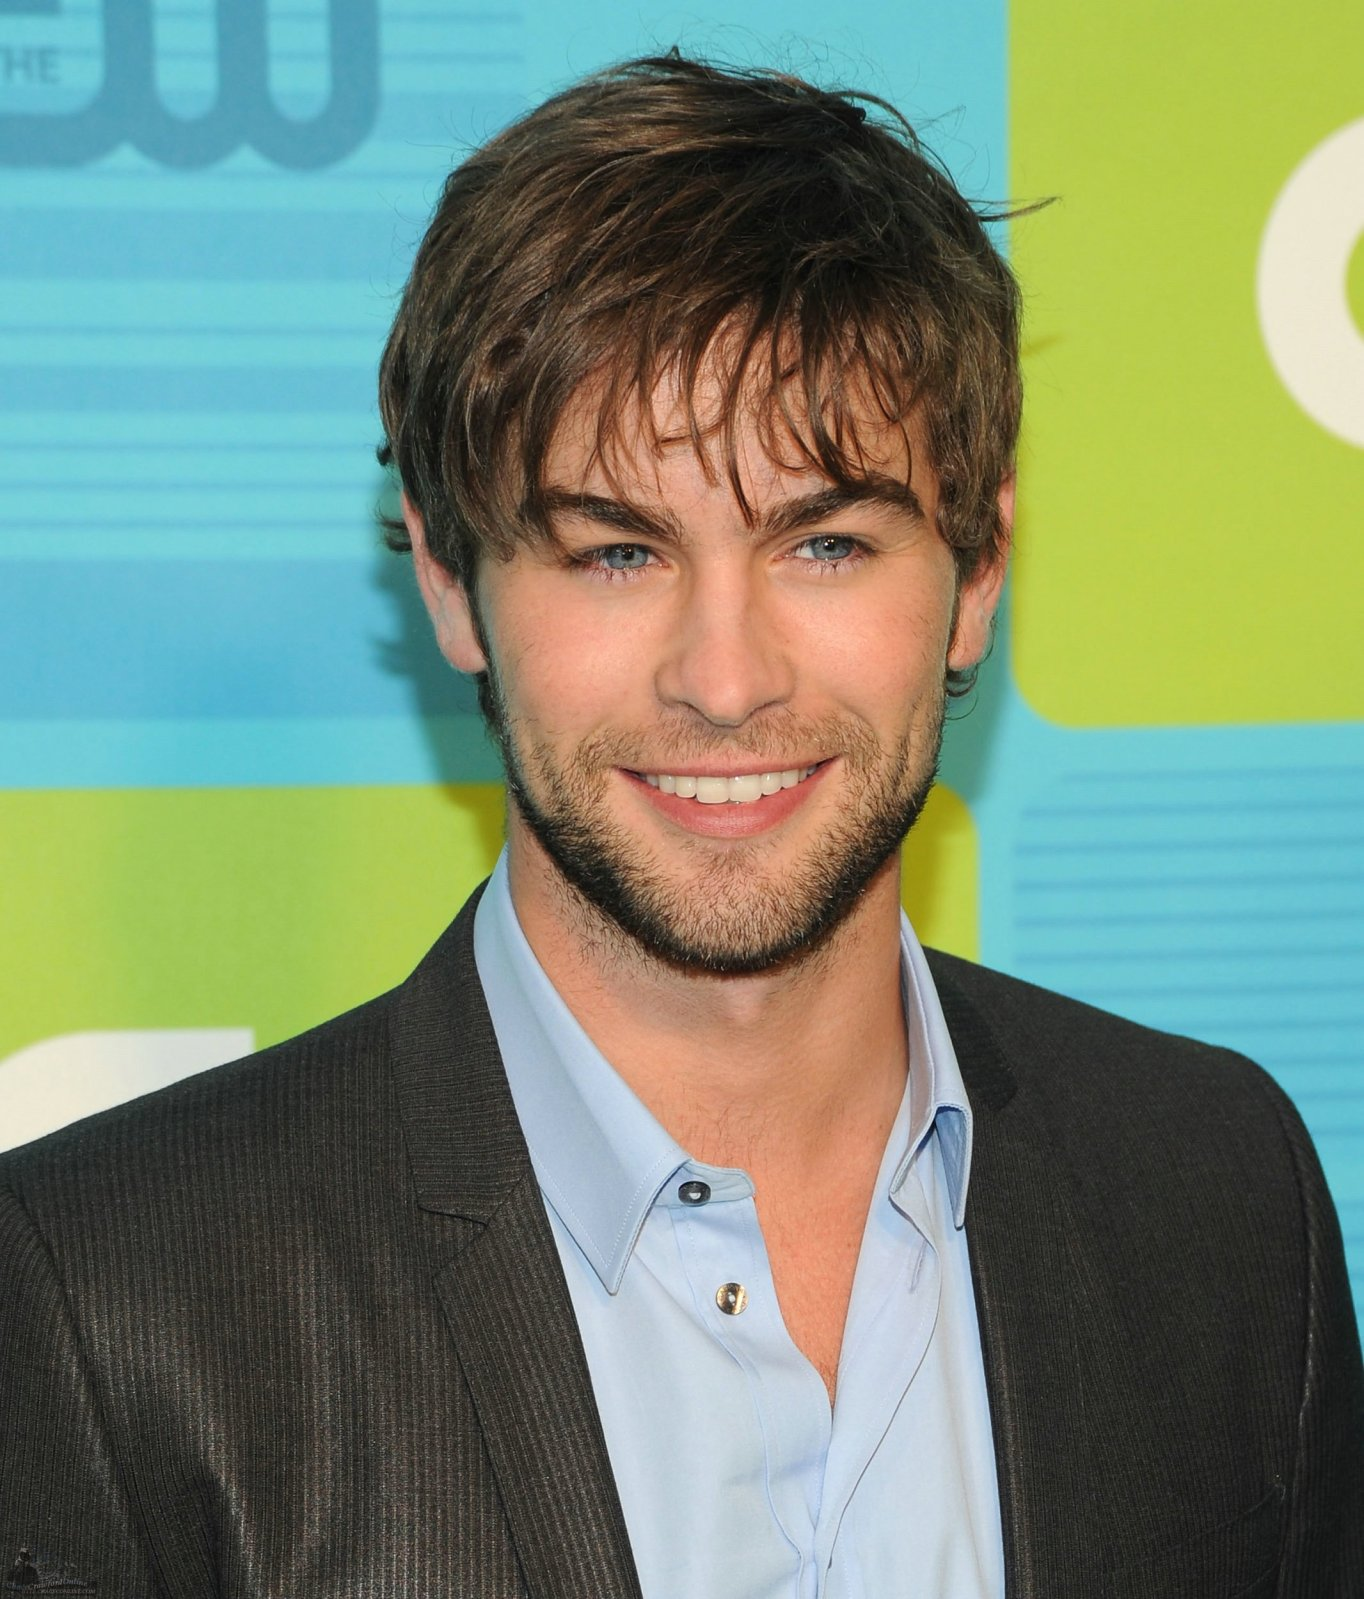 Cartoon pictures of chace crawford -  Off Chace Crawford E Sua Caricatura